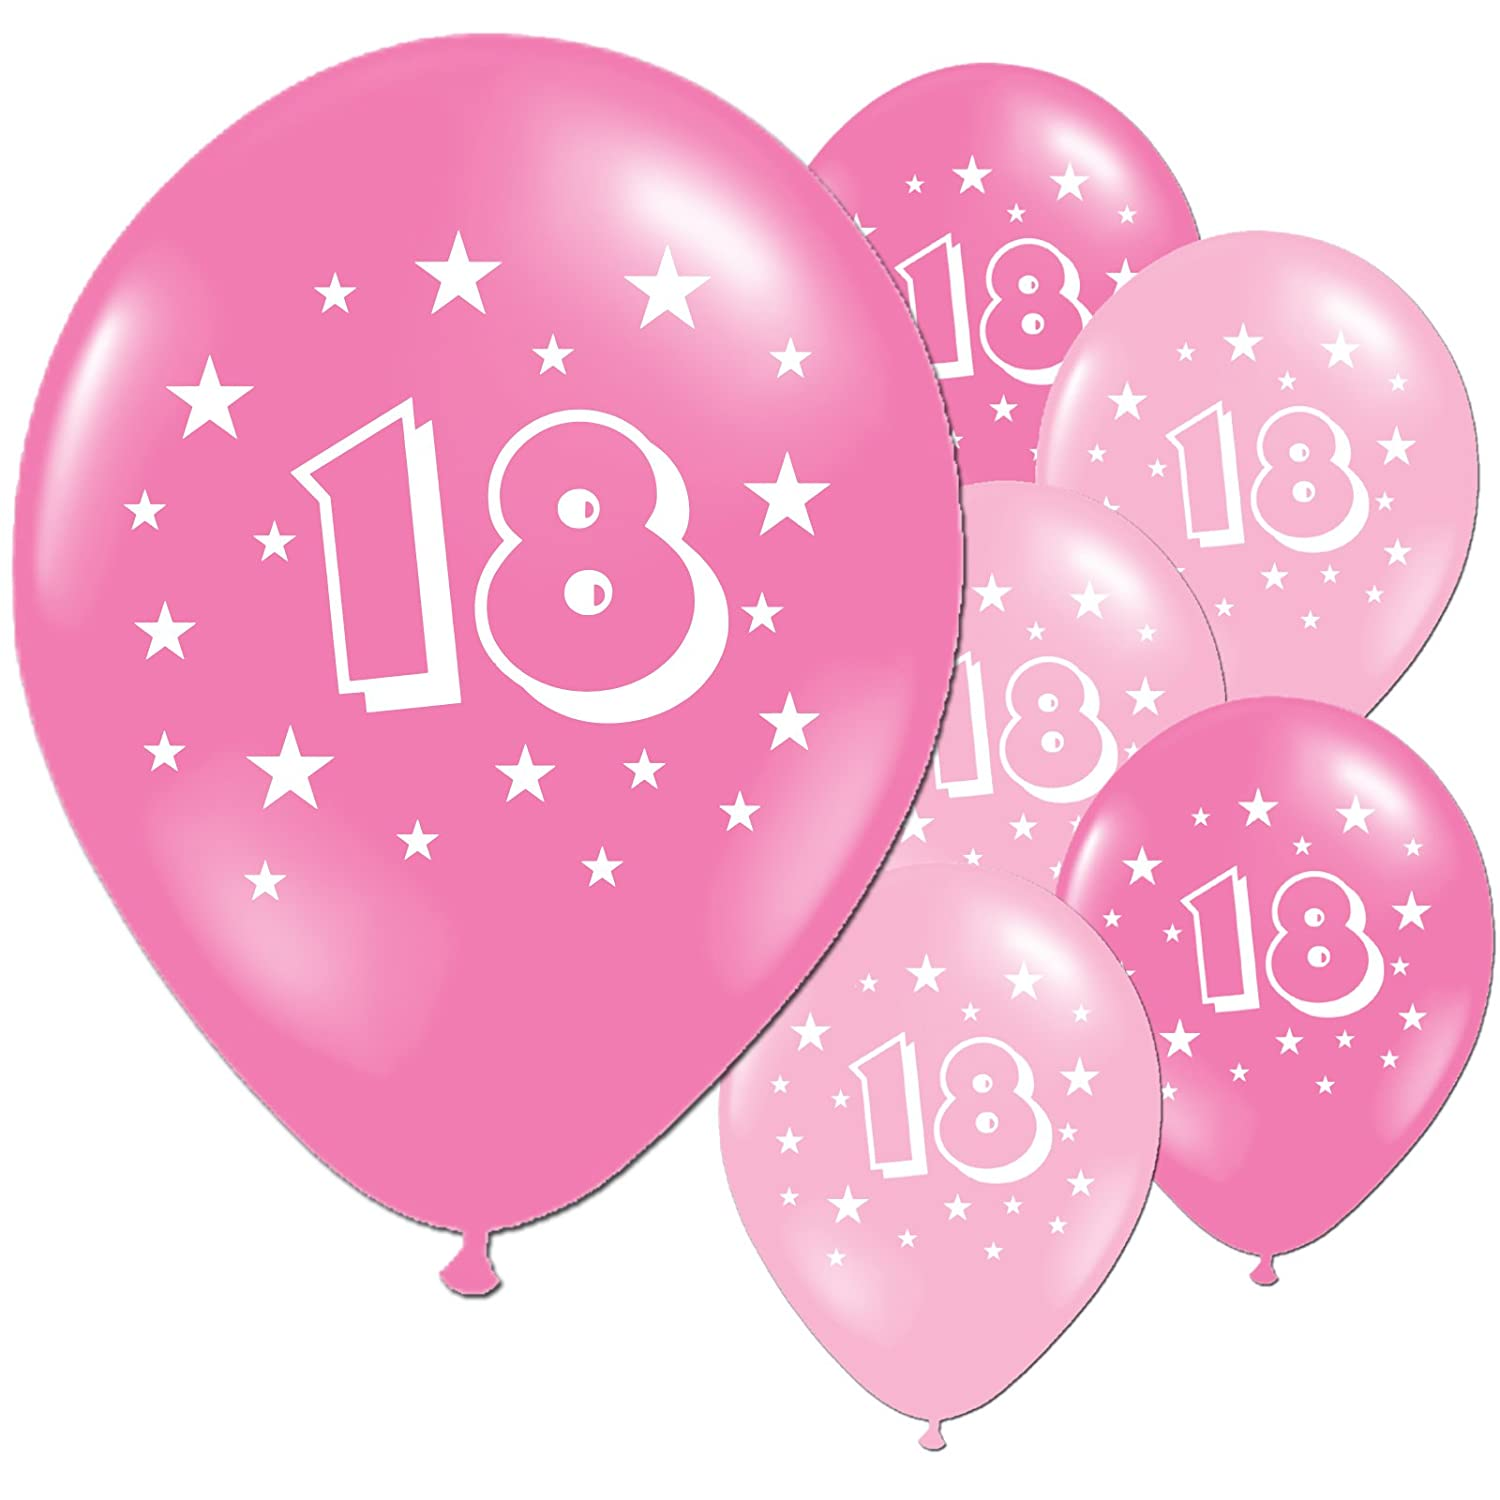 20 Fuschia And Pink 18th Birthday Party Balloons Amazoncouk Toys Games